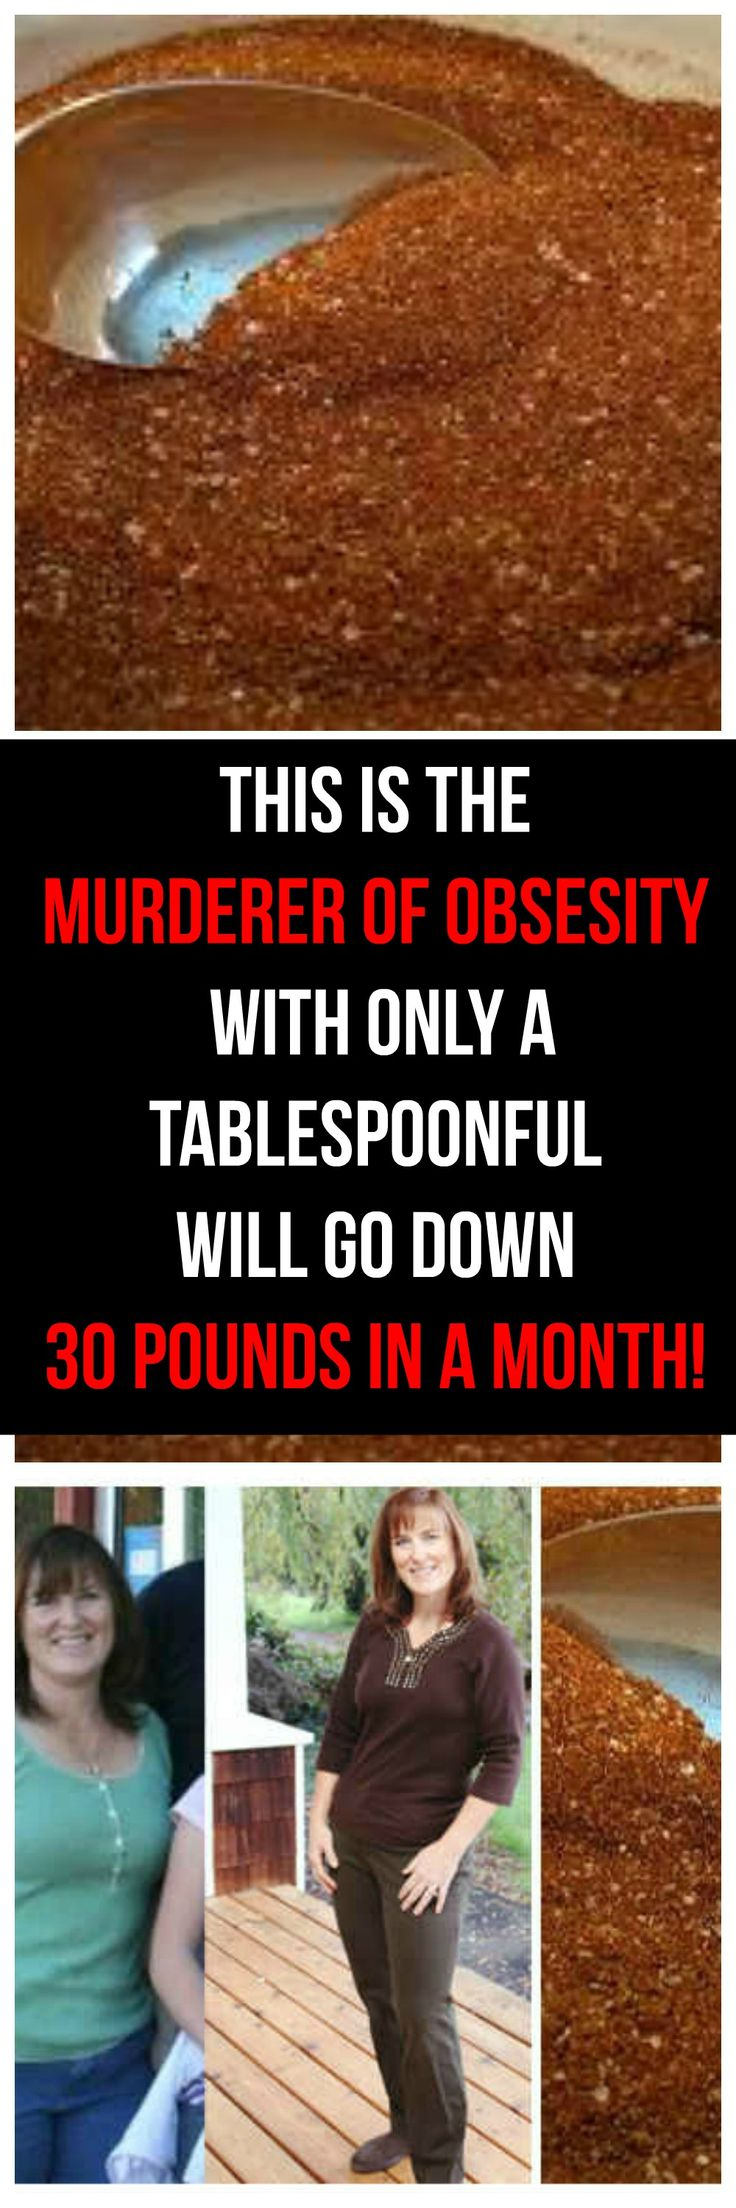 This Is the Murderer Of Obesity, With Only a Tablespoonful Will go Down 30 POUNDS IN A MONTH!